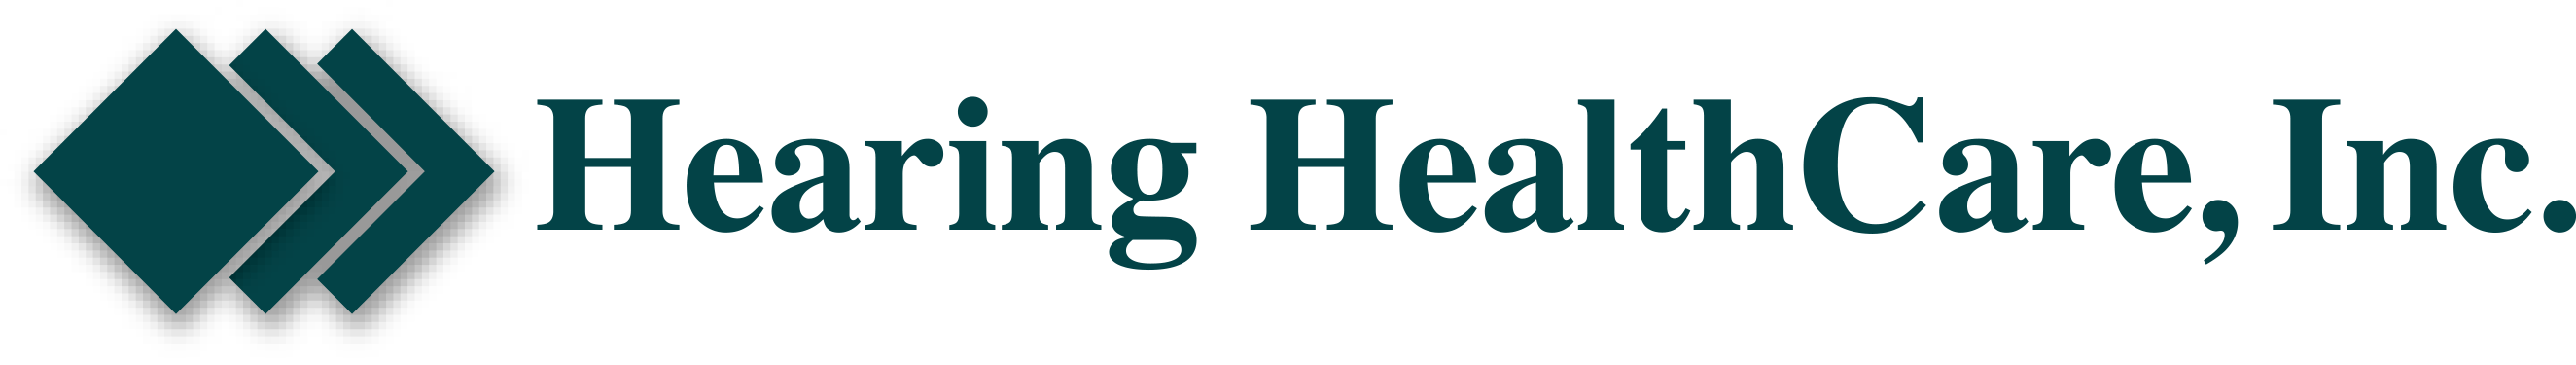 Hearing HealthCare, Inc.